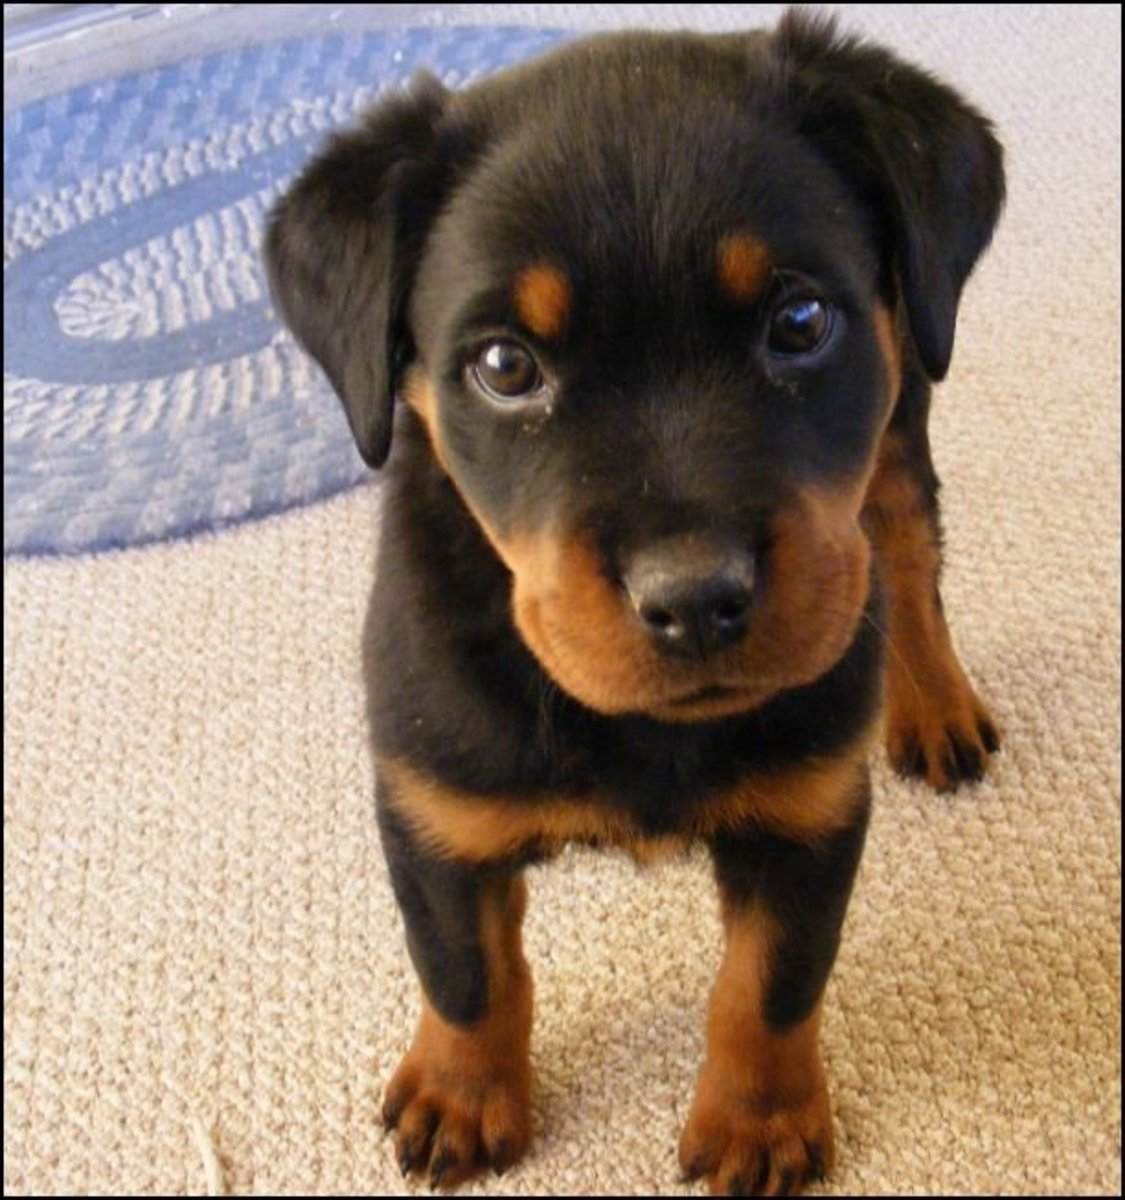 Floppy eared dogs are prone to ear infections